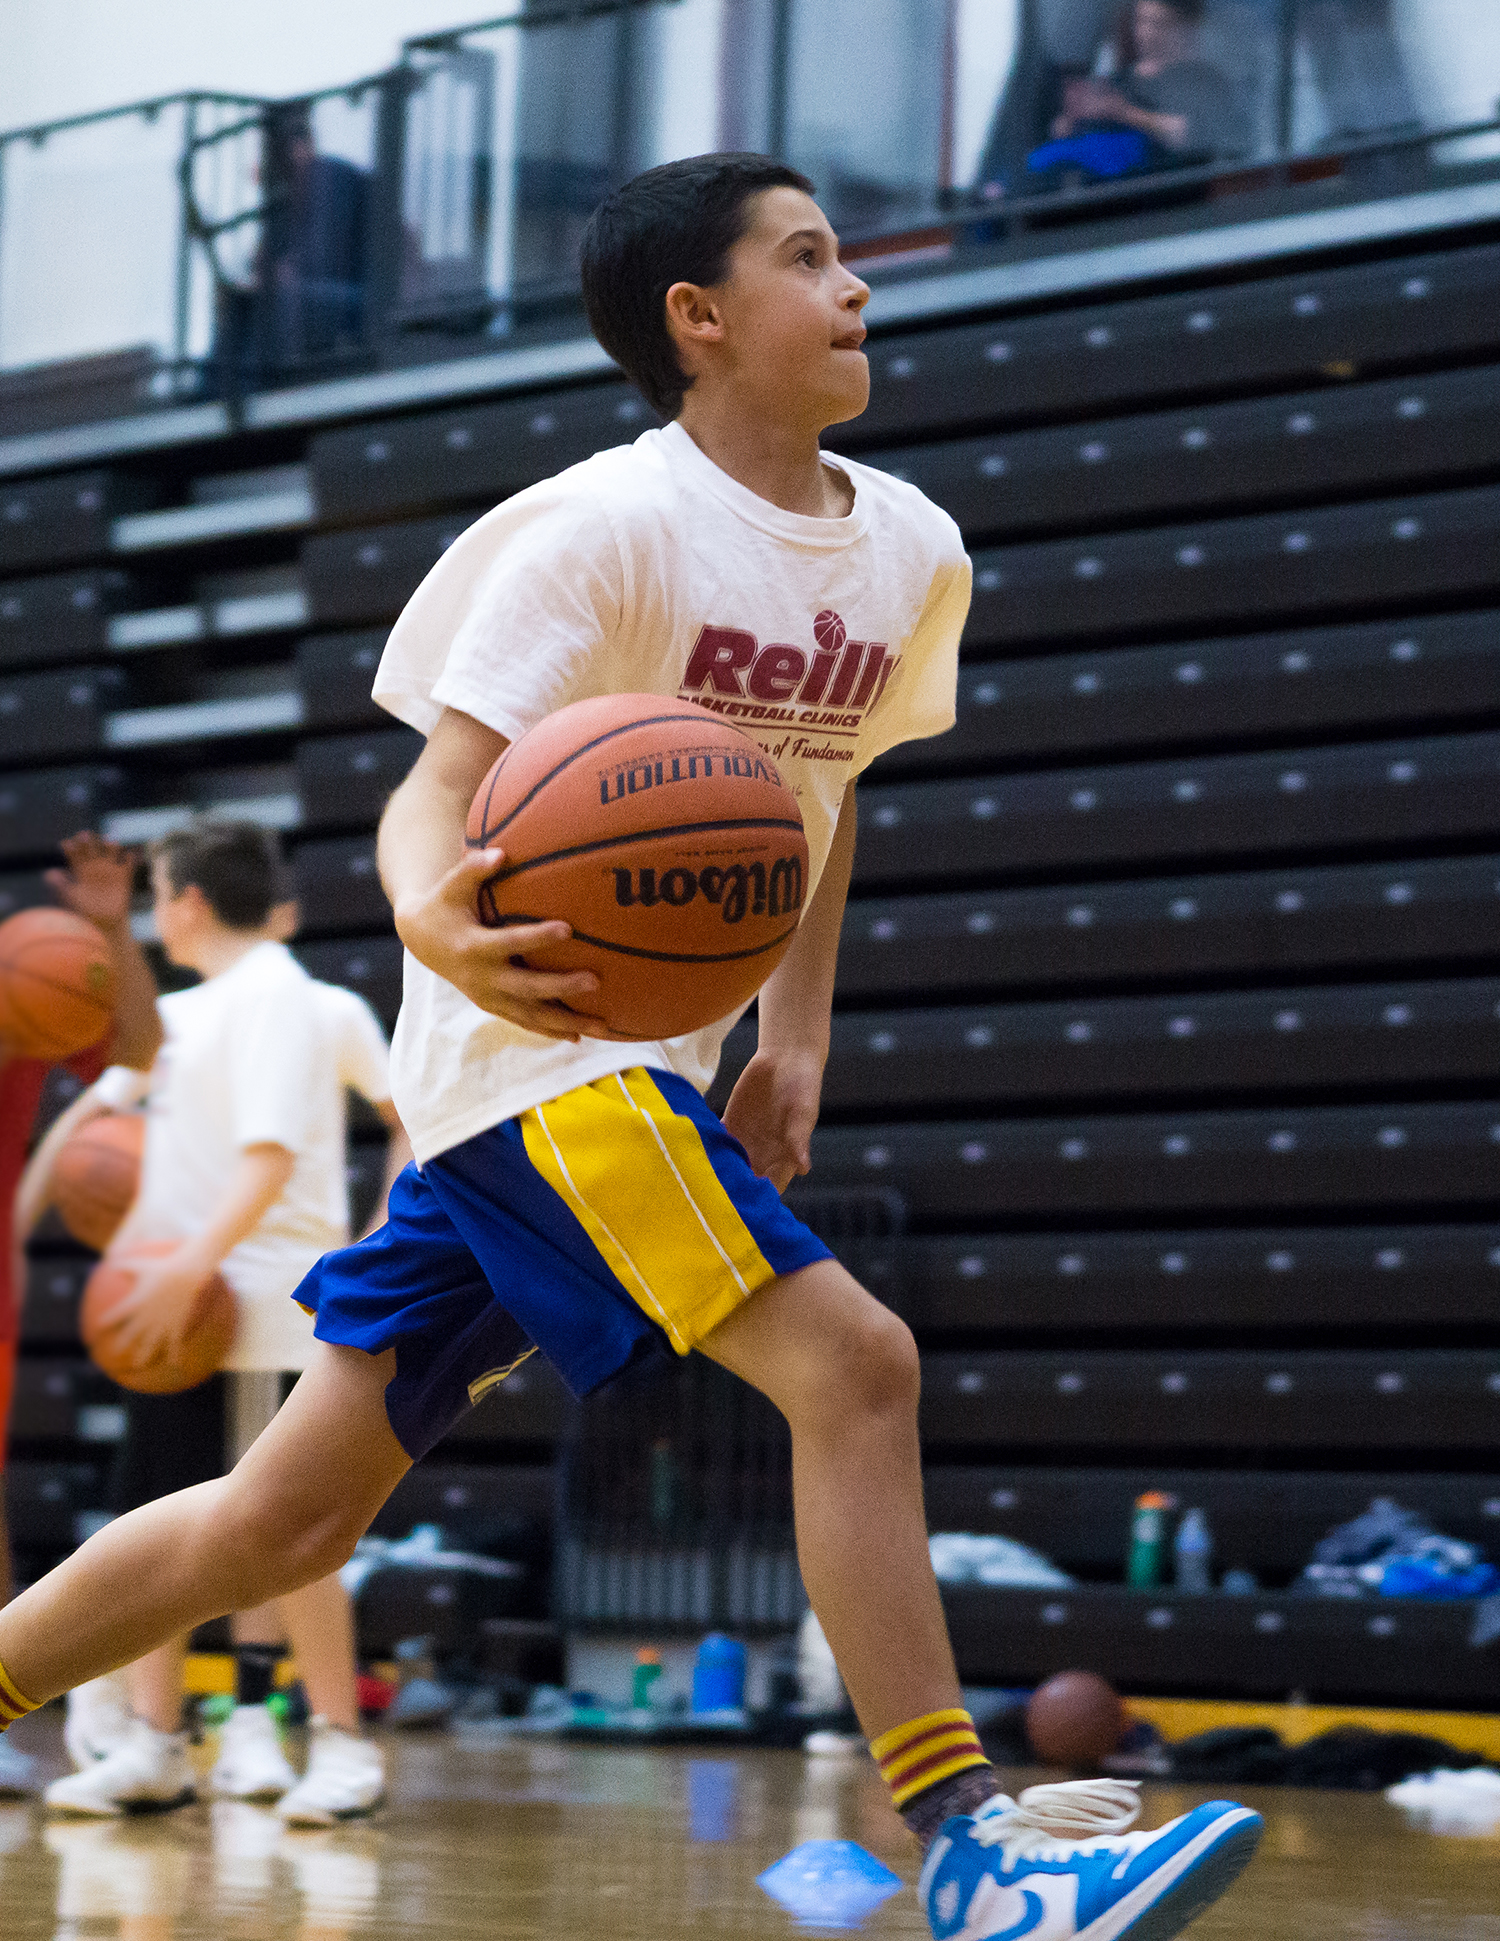 Powell_Reilly Basketball Clinic-50